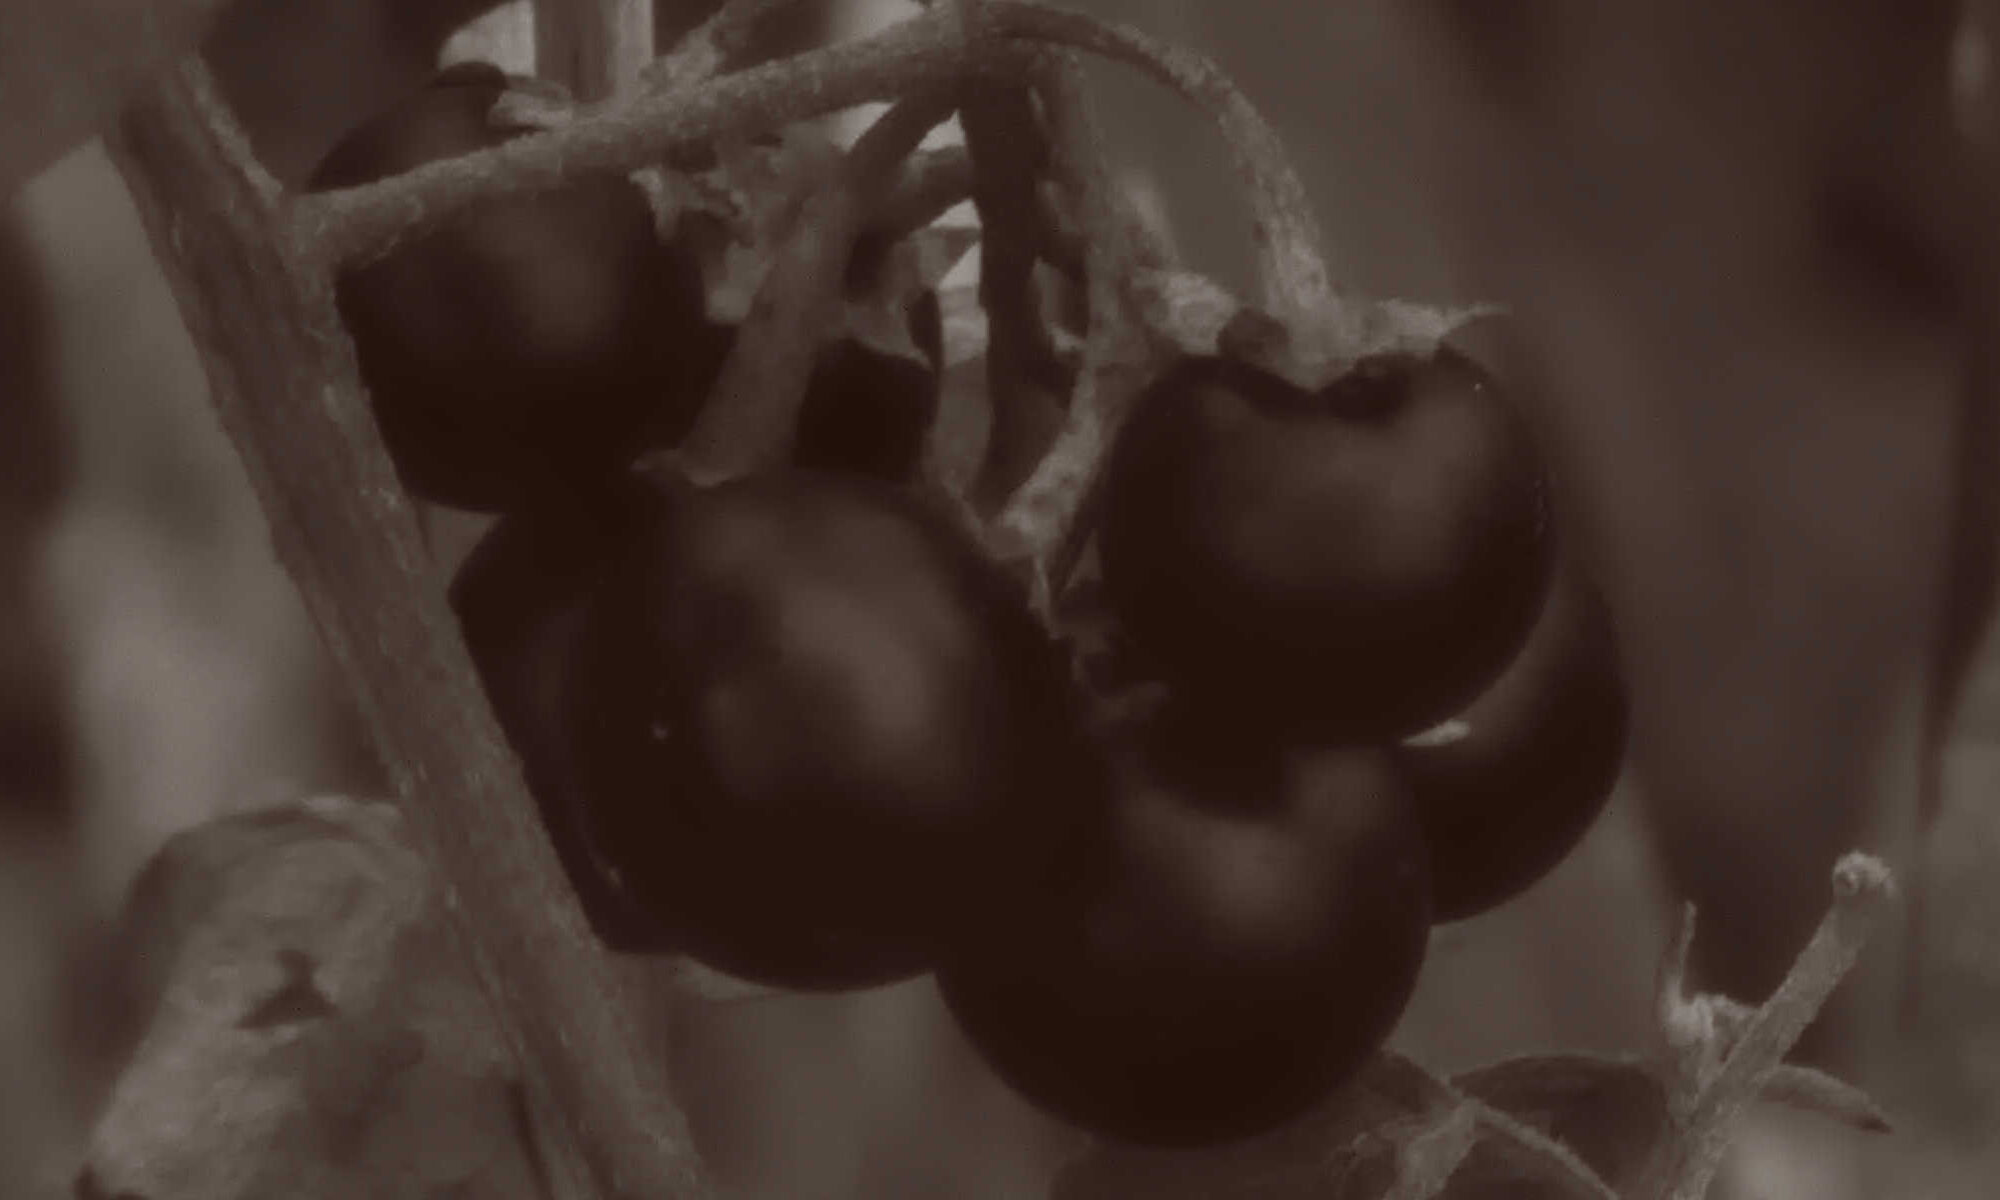 Purely decorative black & white very closeup image of a some deadly nightshade berries.